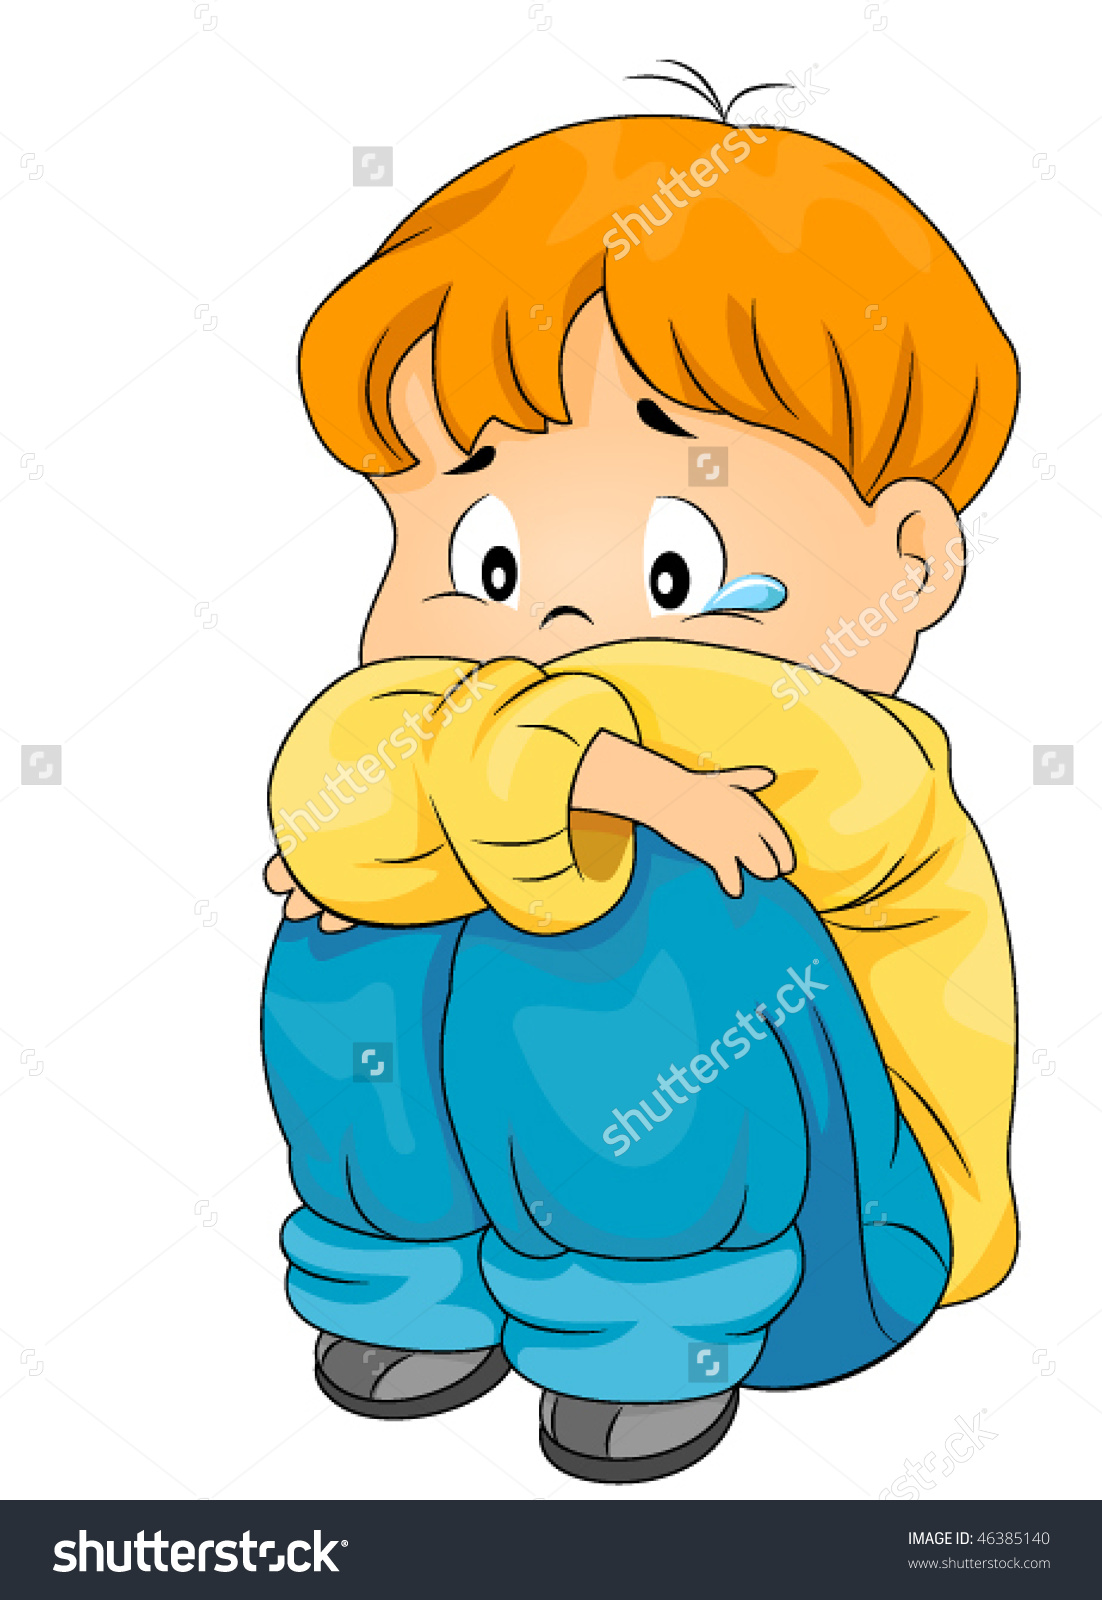 Gif clipart images of a lonely kid.